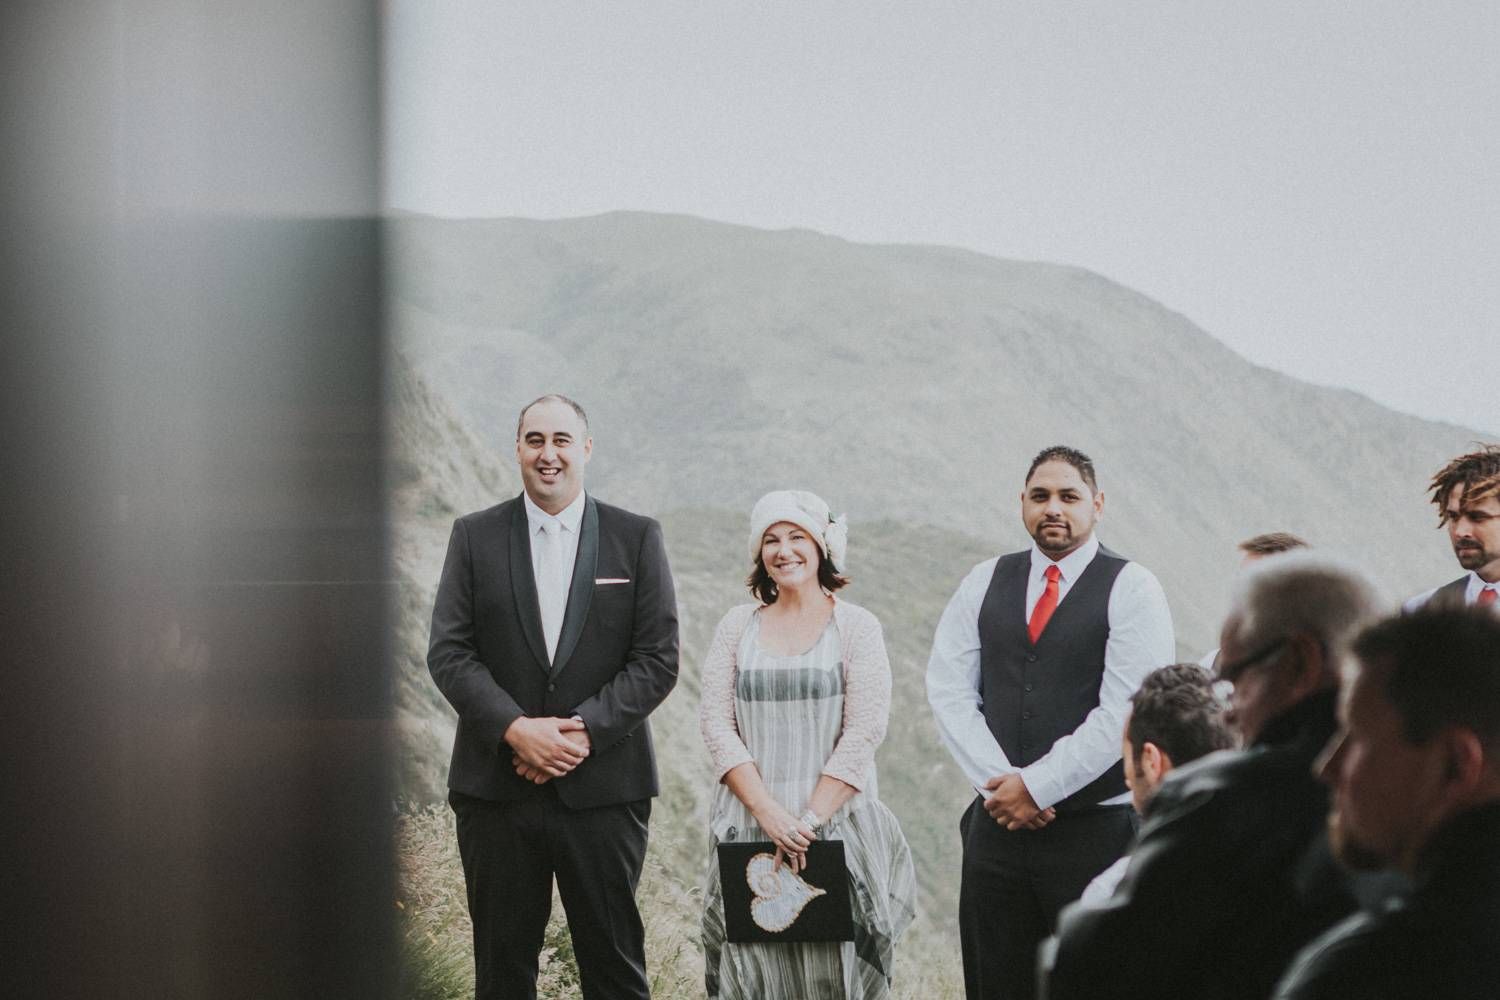 Grooms first look at Bride as she walks down wedding aisle